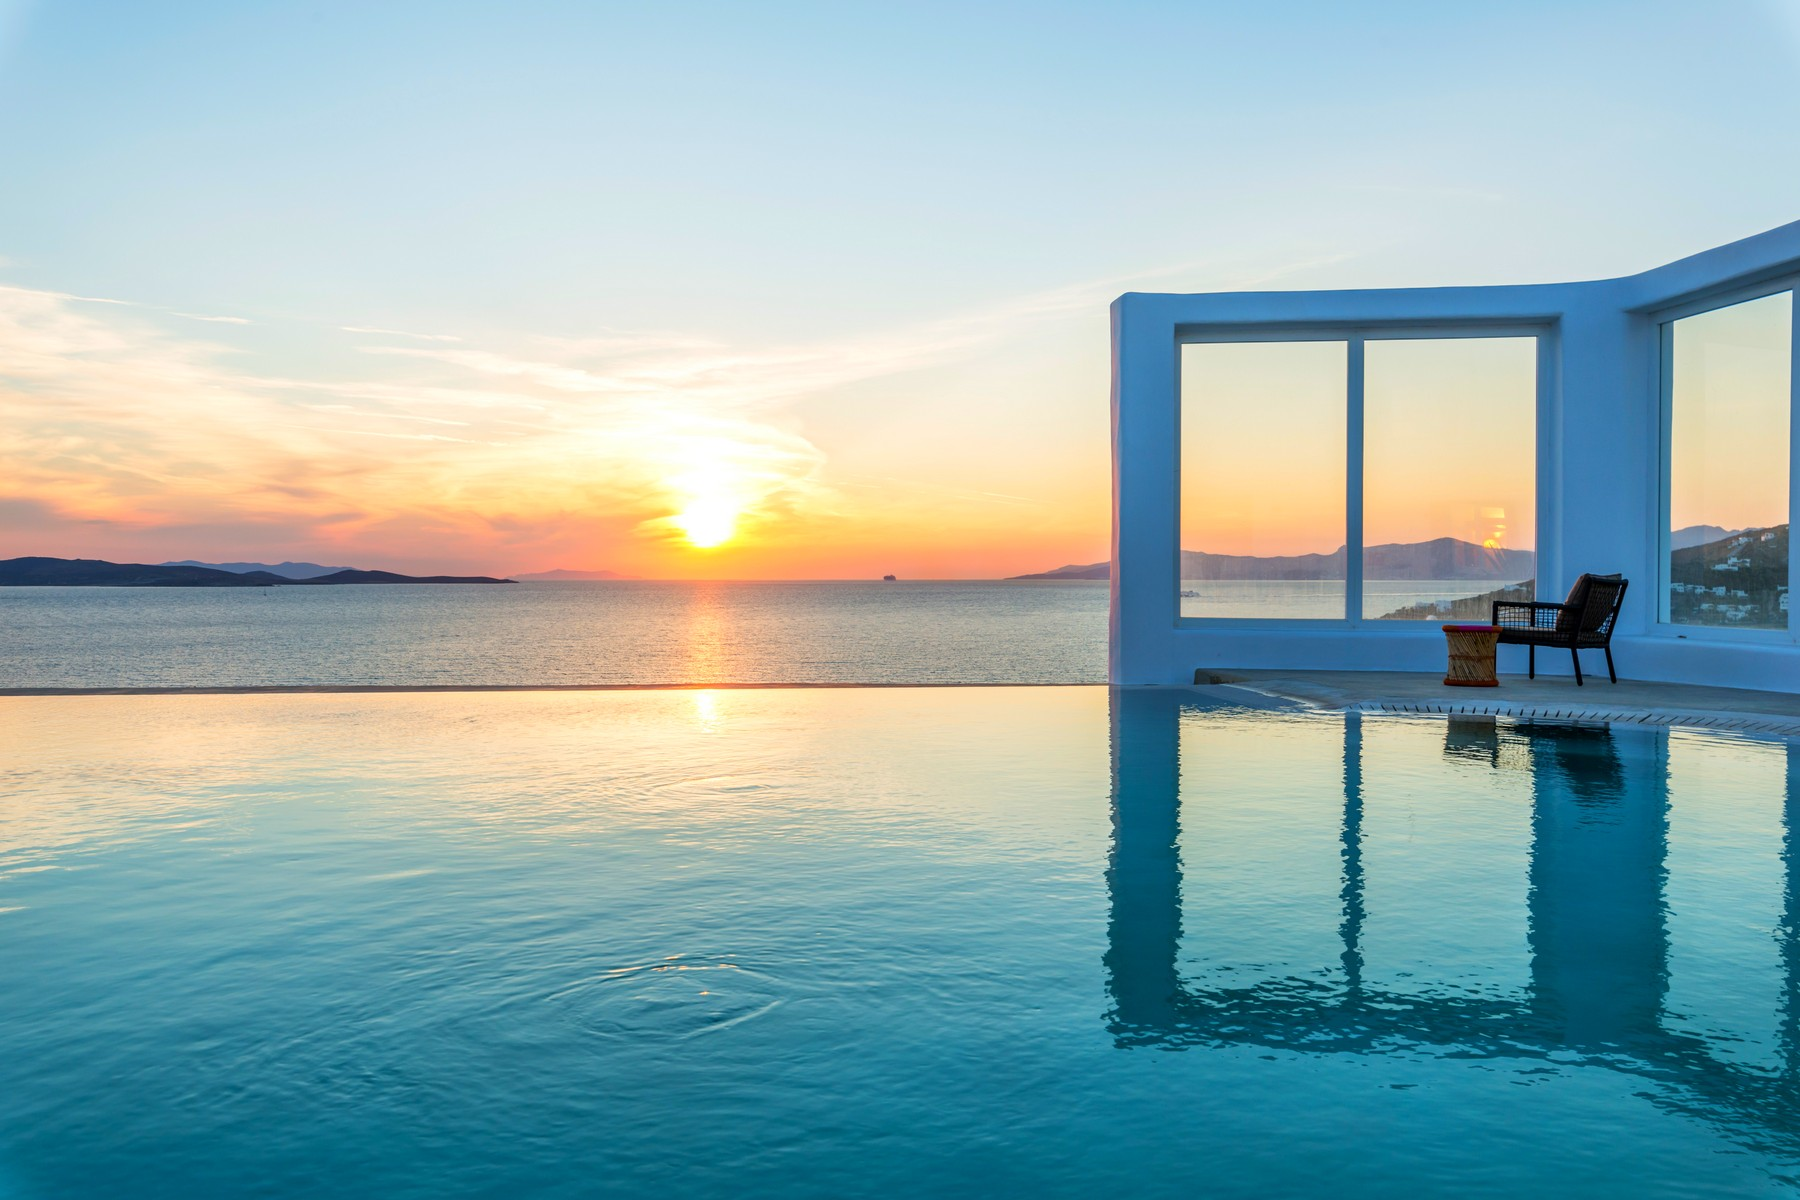 Single Family Home for Sale at Exclusive Waterfront Aleomandra Exclusive Waterfront Mykonos, Southern Aegean, 84600 Greece